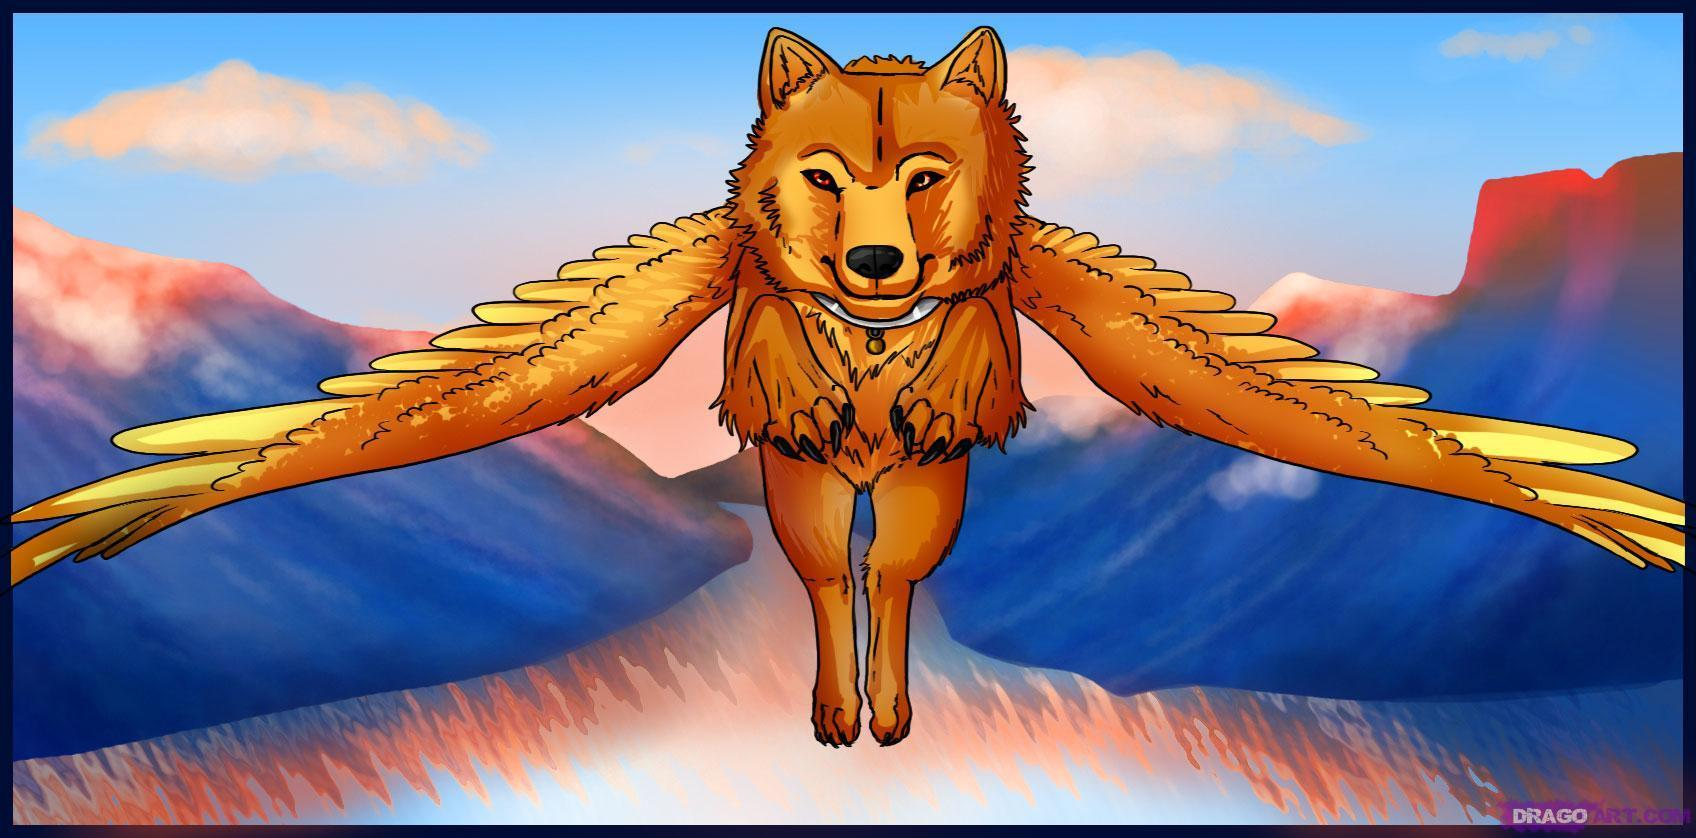 Wolves With Wings Images Winged Wolves Hd Wallpaper And Background